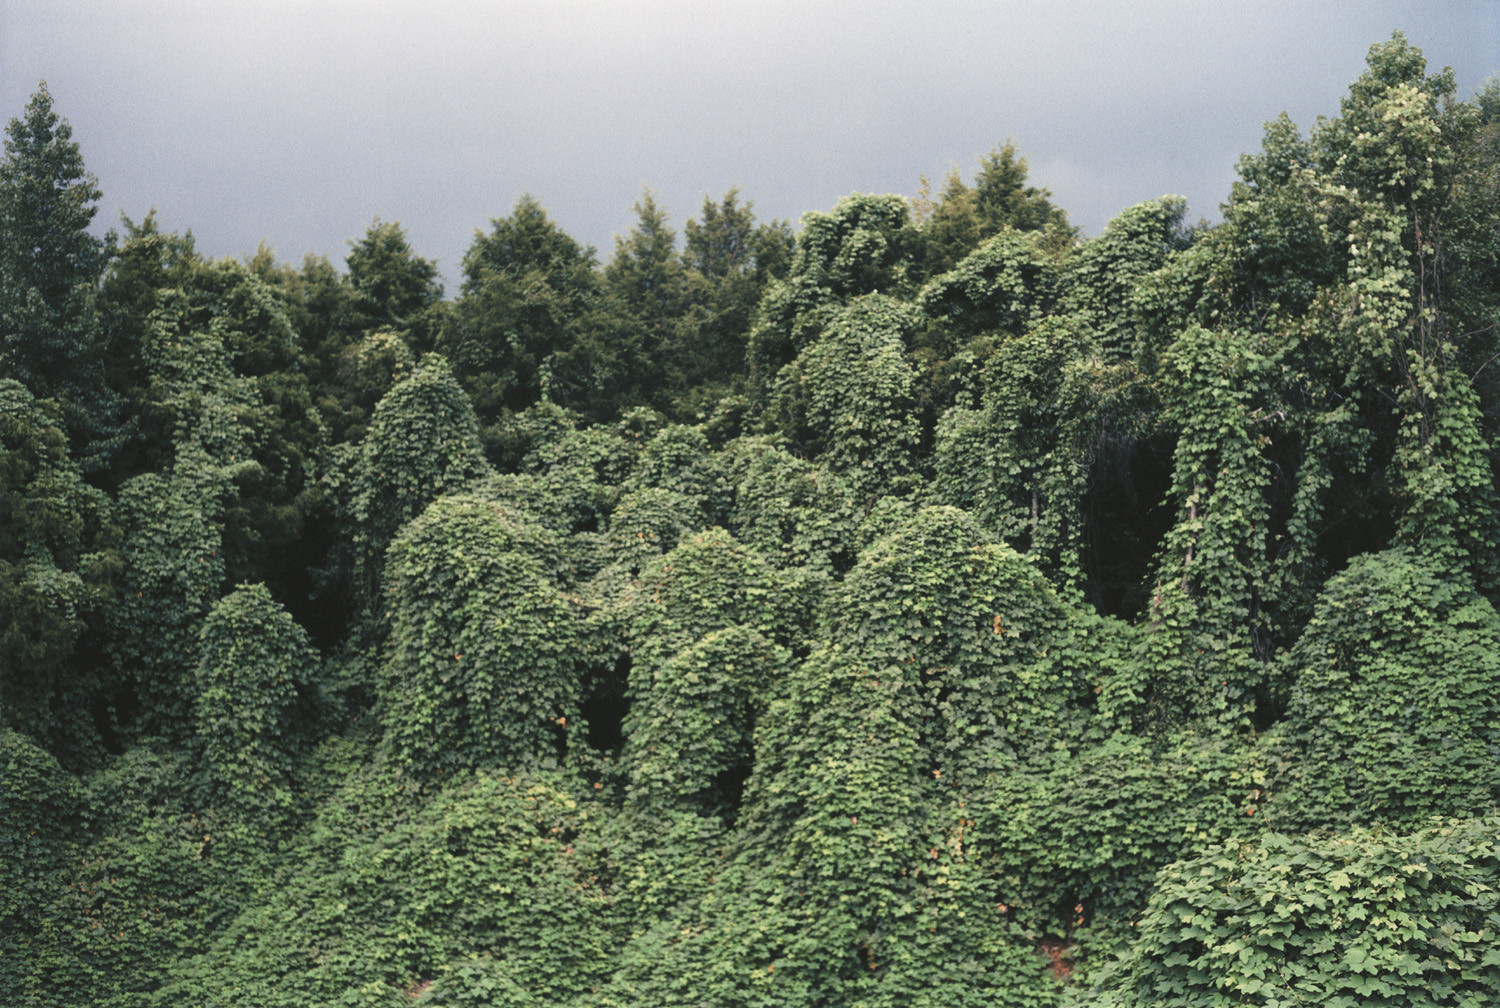 William Christenberry, Kudzu with Red Soil Bank, near Akron, Alabama, 1981